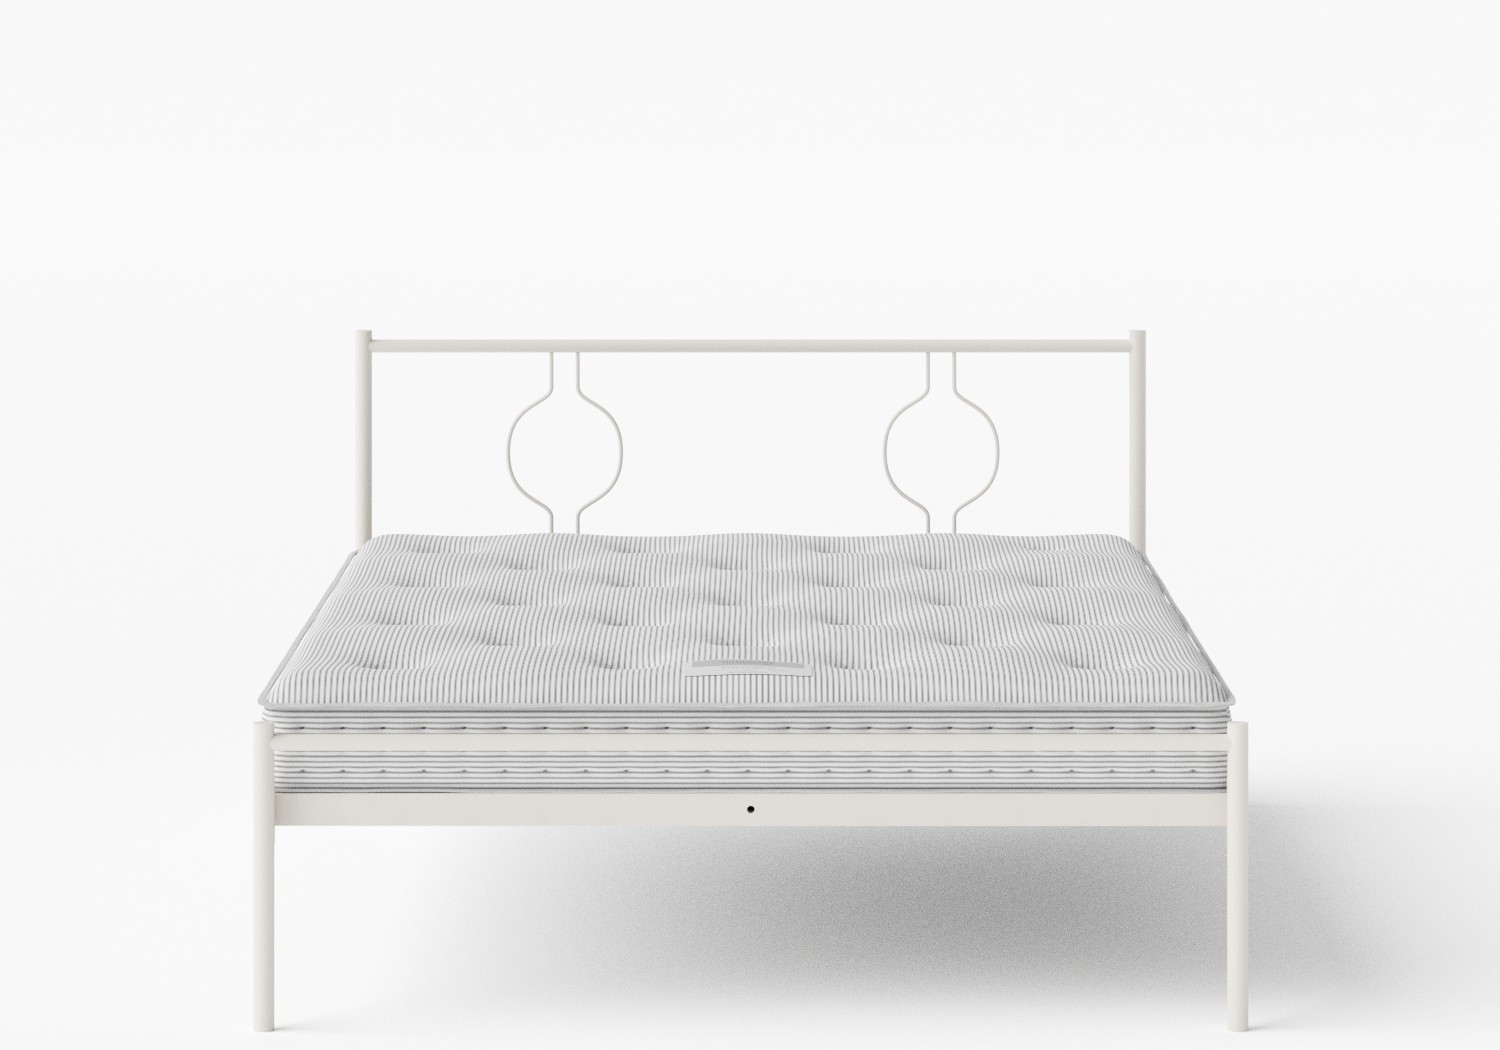 Meiji Iron/Metal Bed in Glossy Ivory shown with Juno 1 mattress